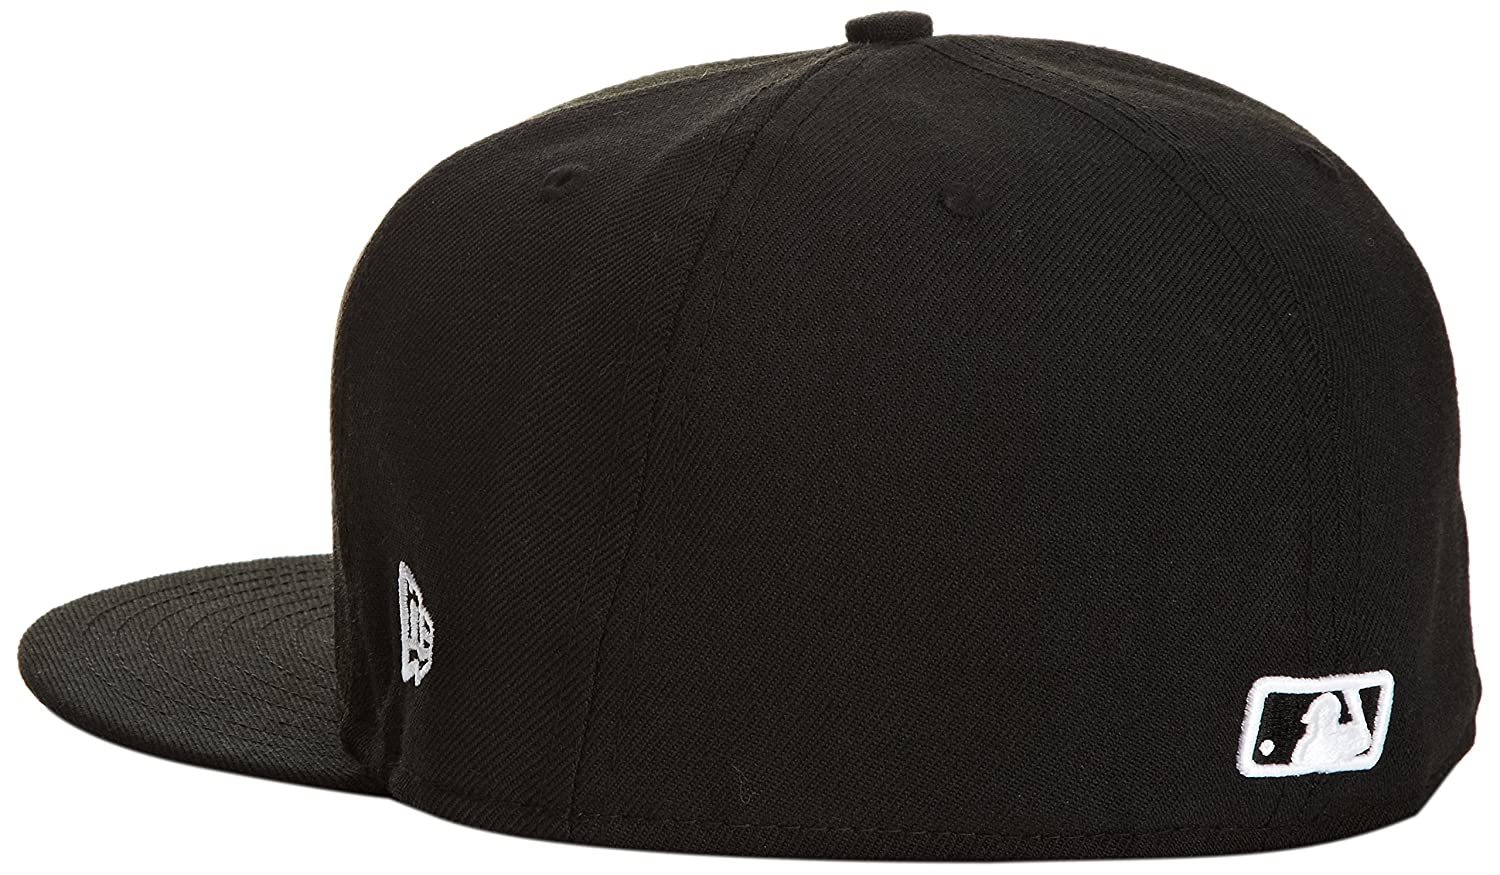 75bd90a419975 Amazon.com   New Era MLB Black with White 59FIFTY Fitted Cap   Sports    Outdoors